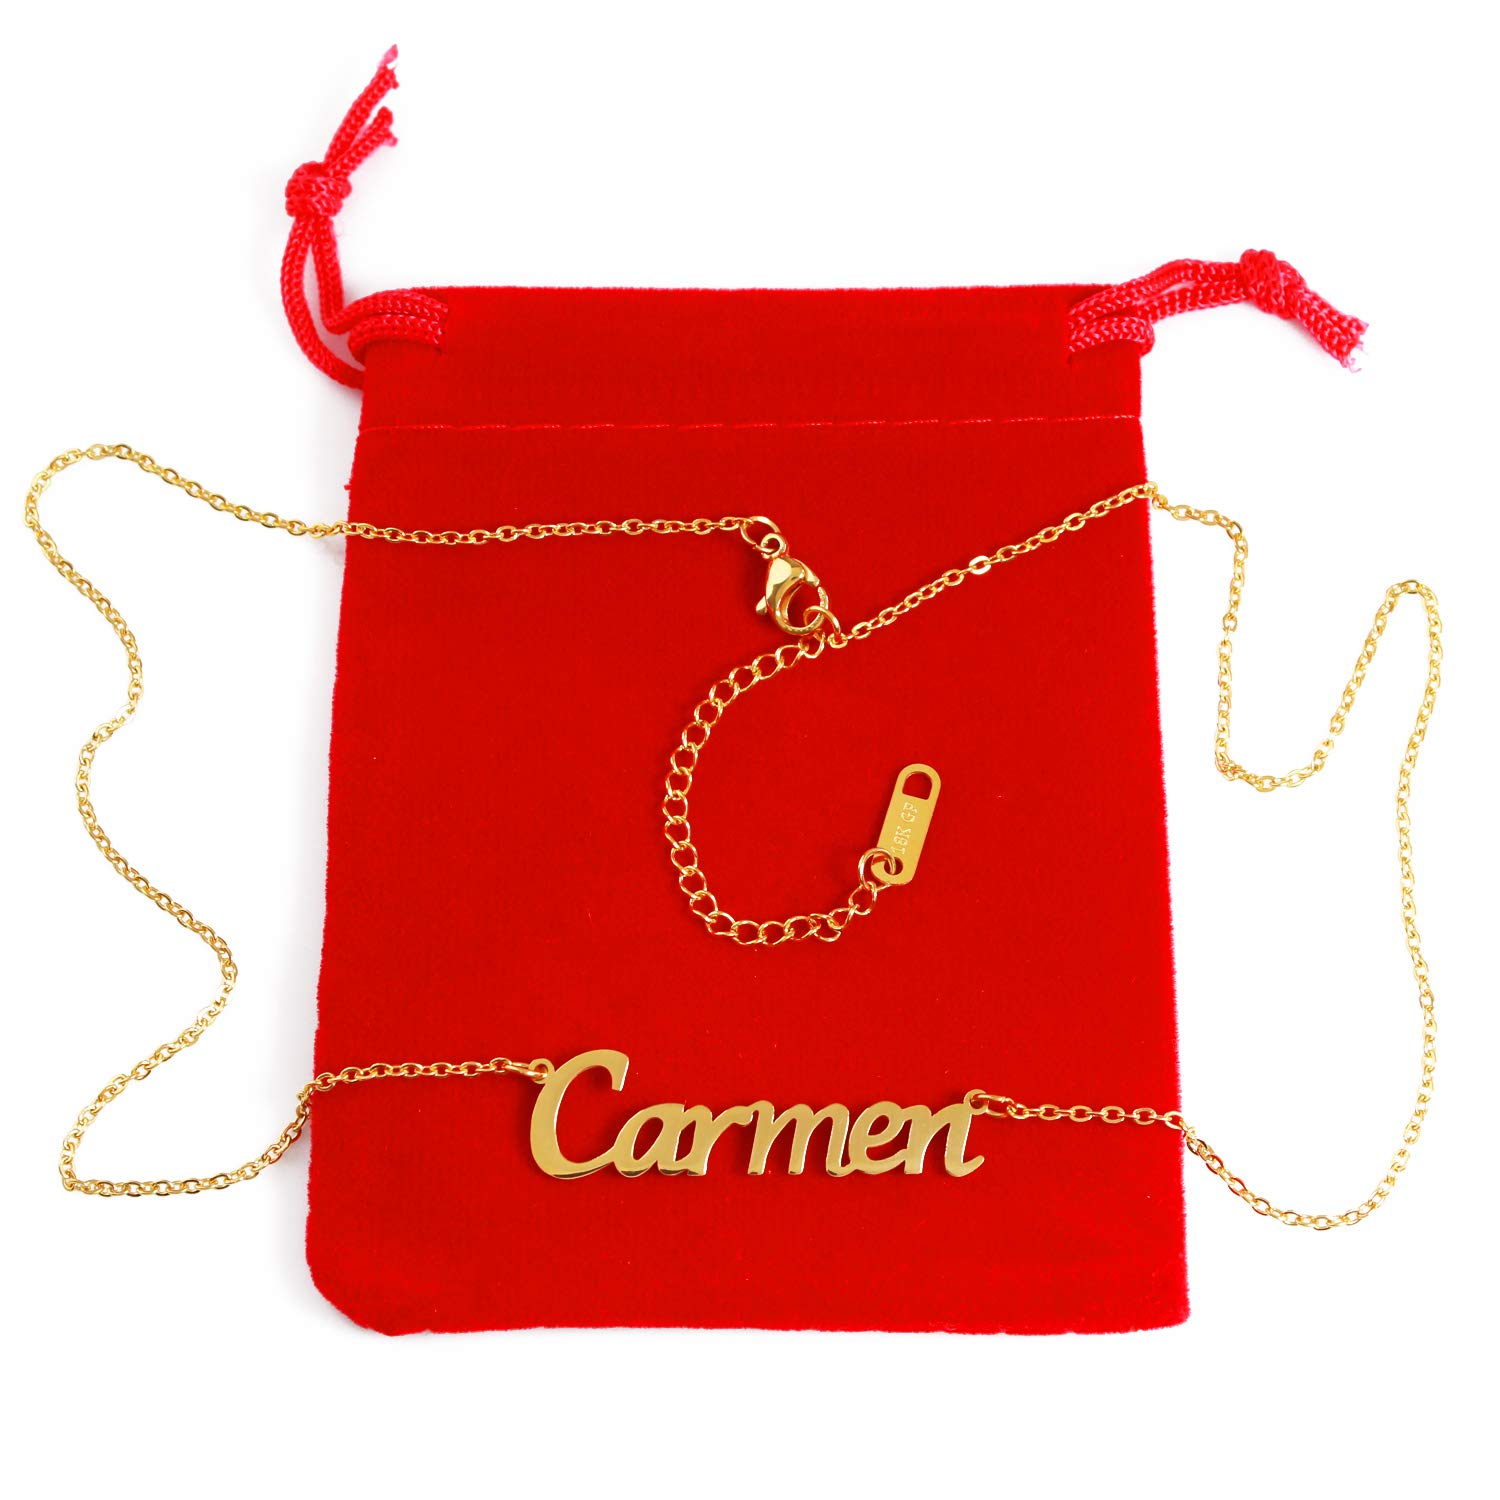 Zacria Carmen Custom Name Necklace Personalized 18ct Gold Plated